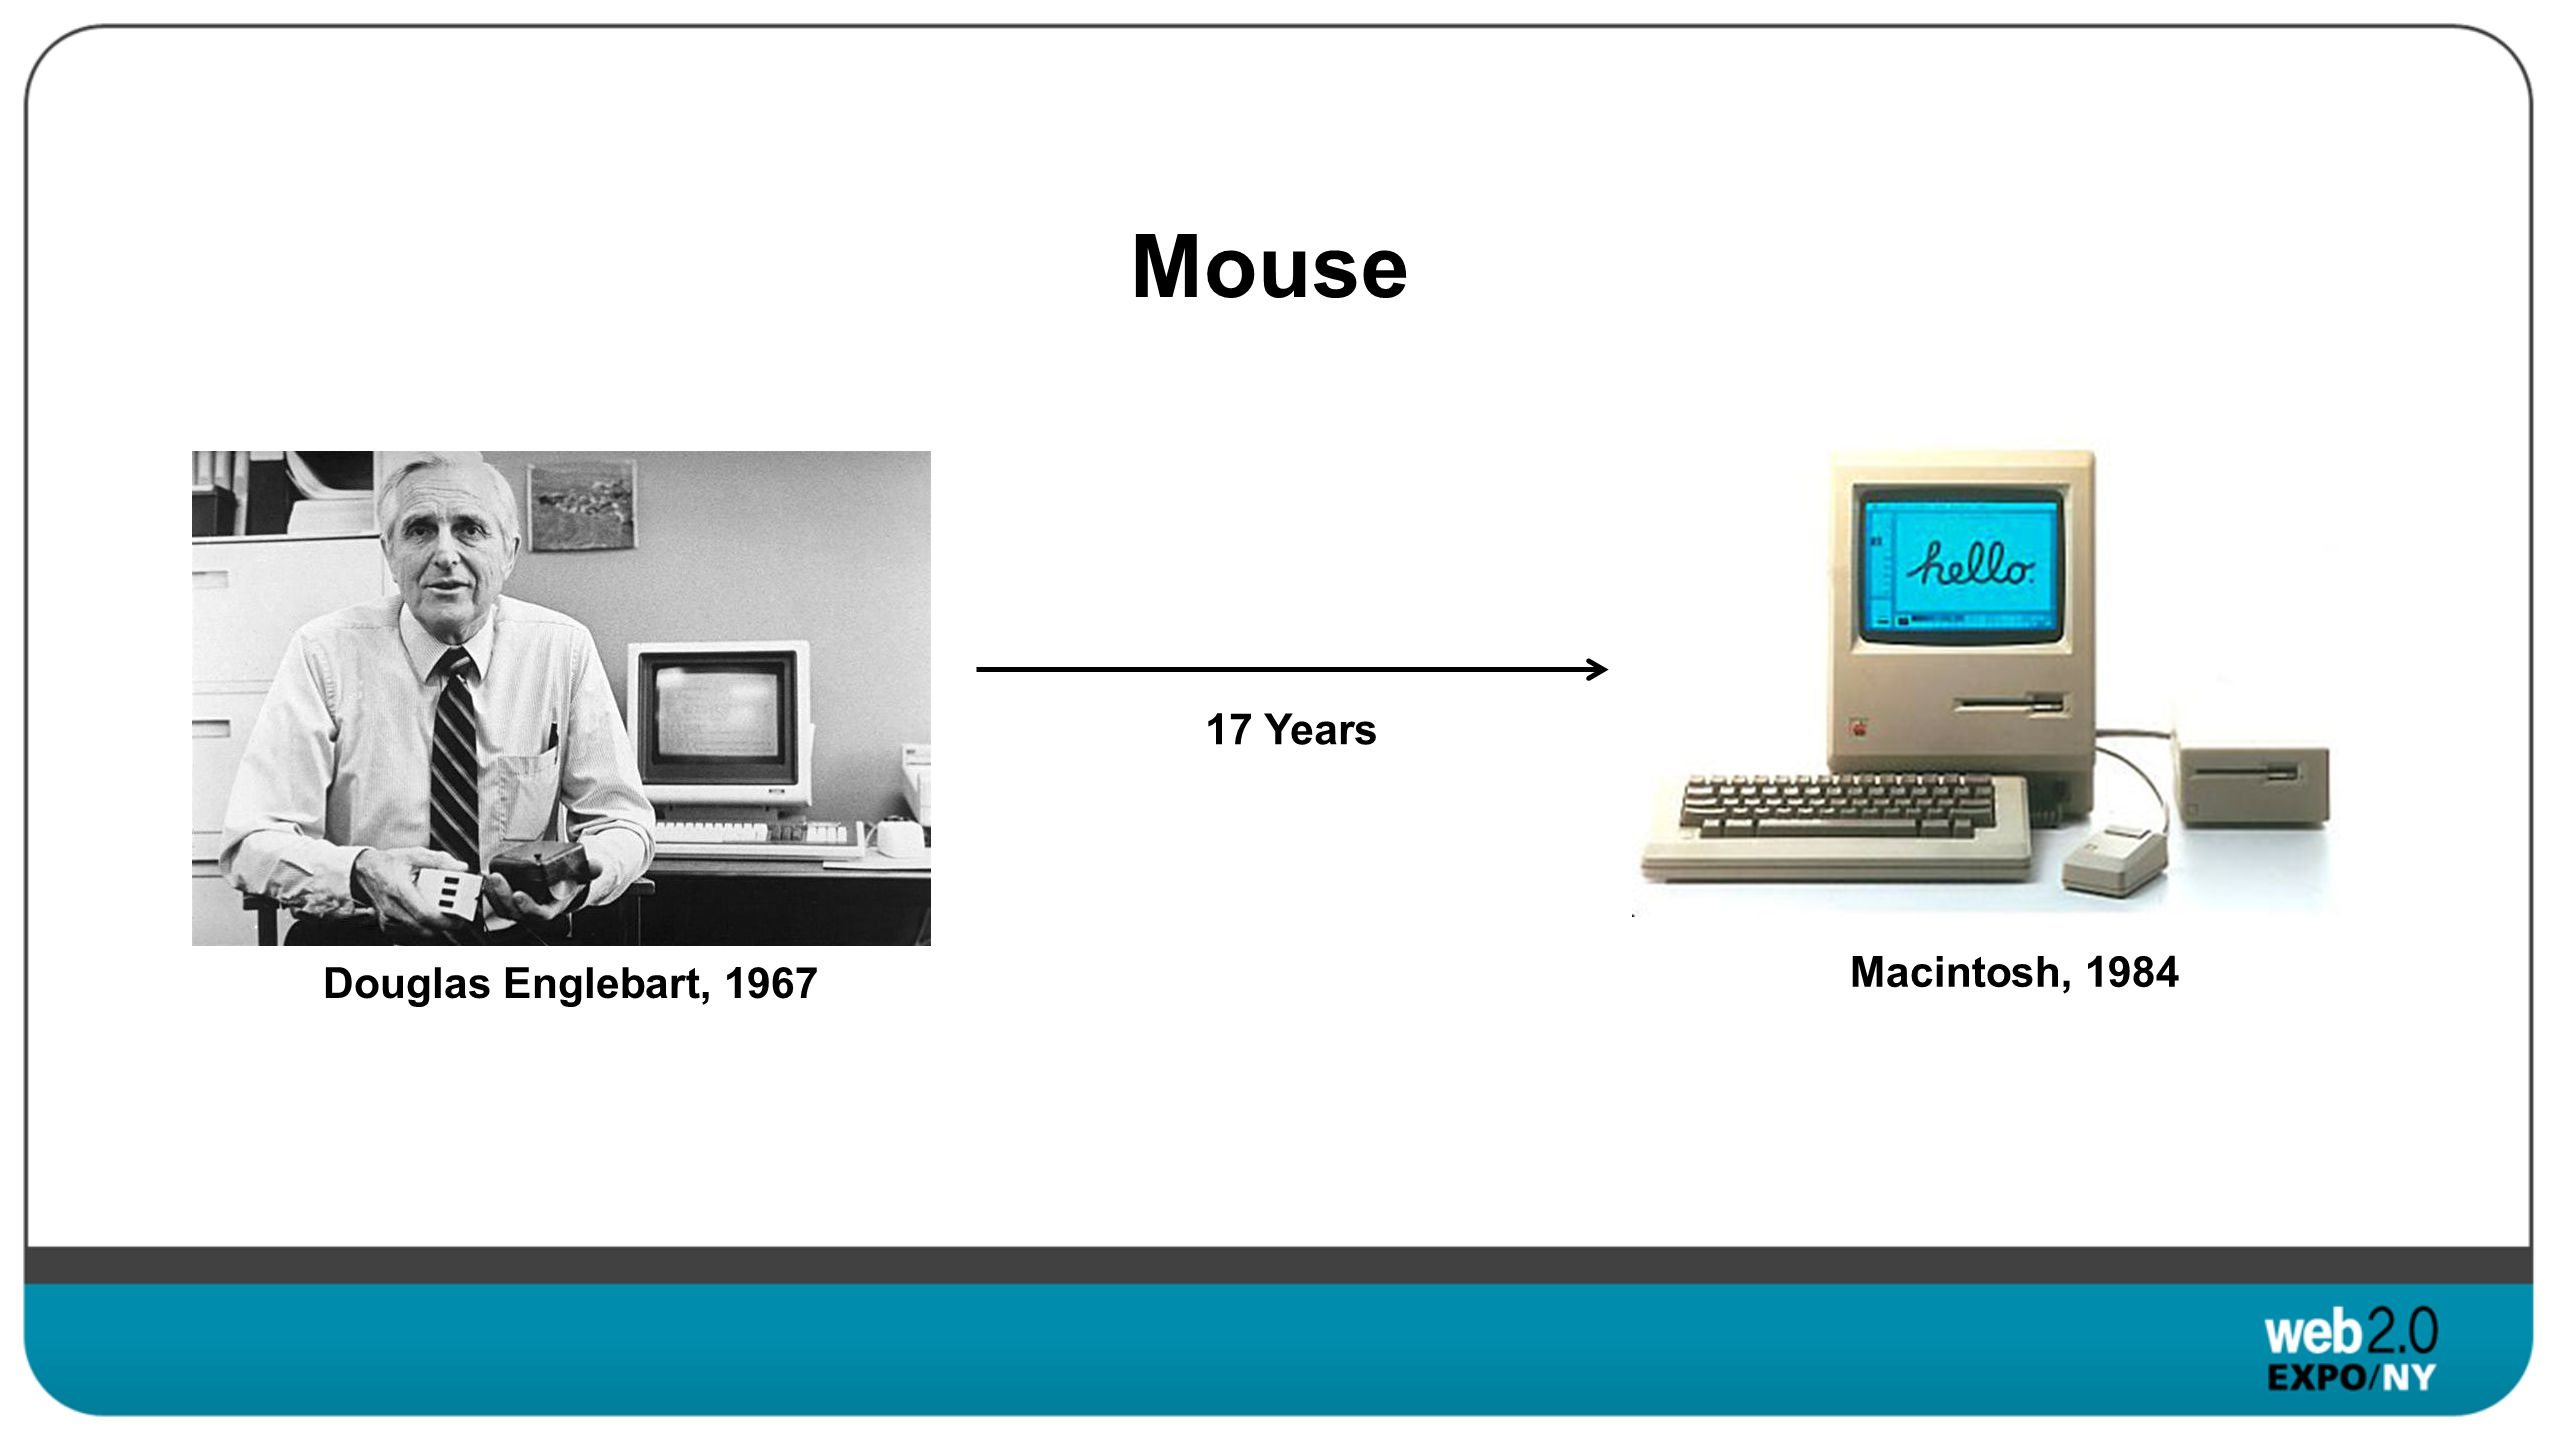 Mouse 17 Years Macintosh, 1984 Douglas Englebart, 1967